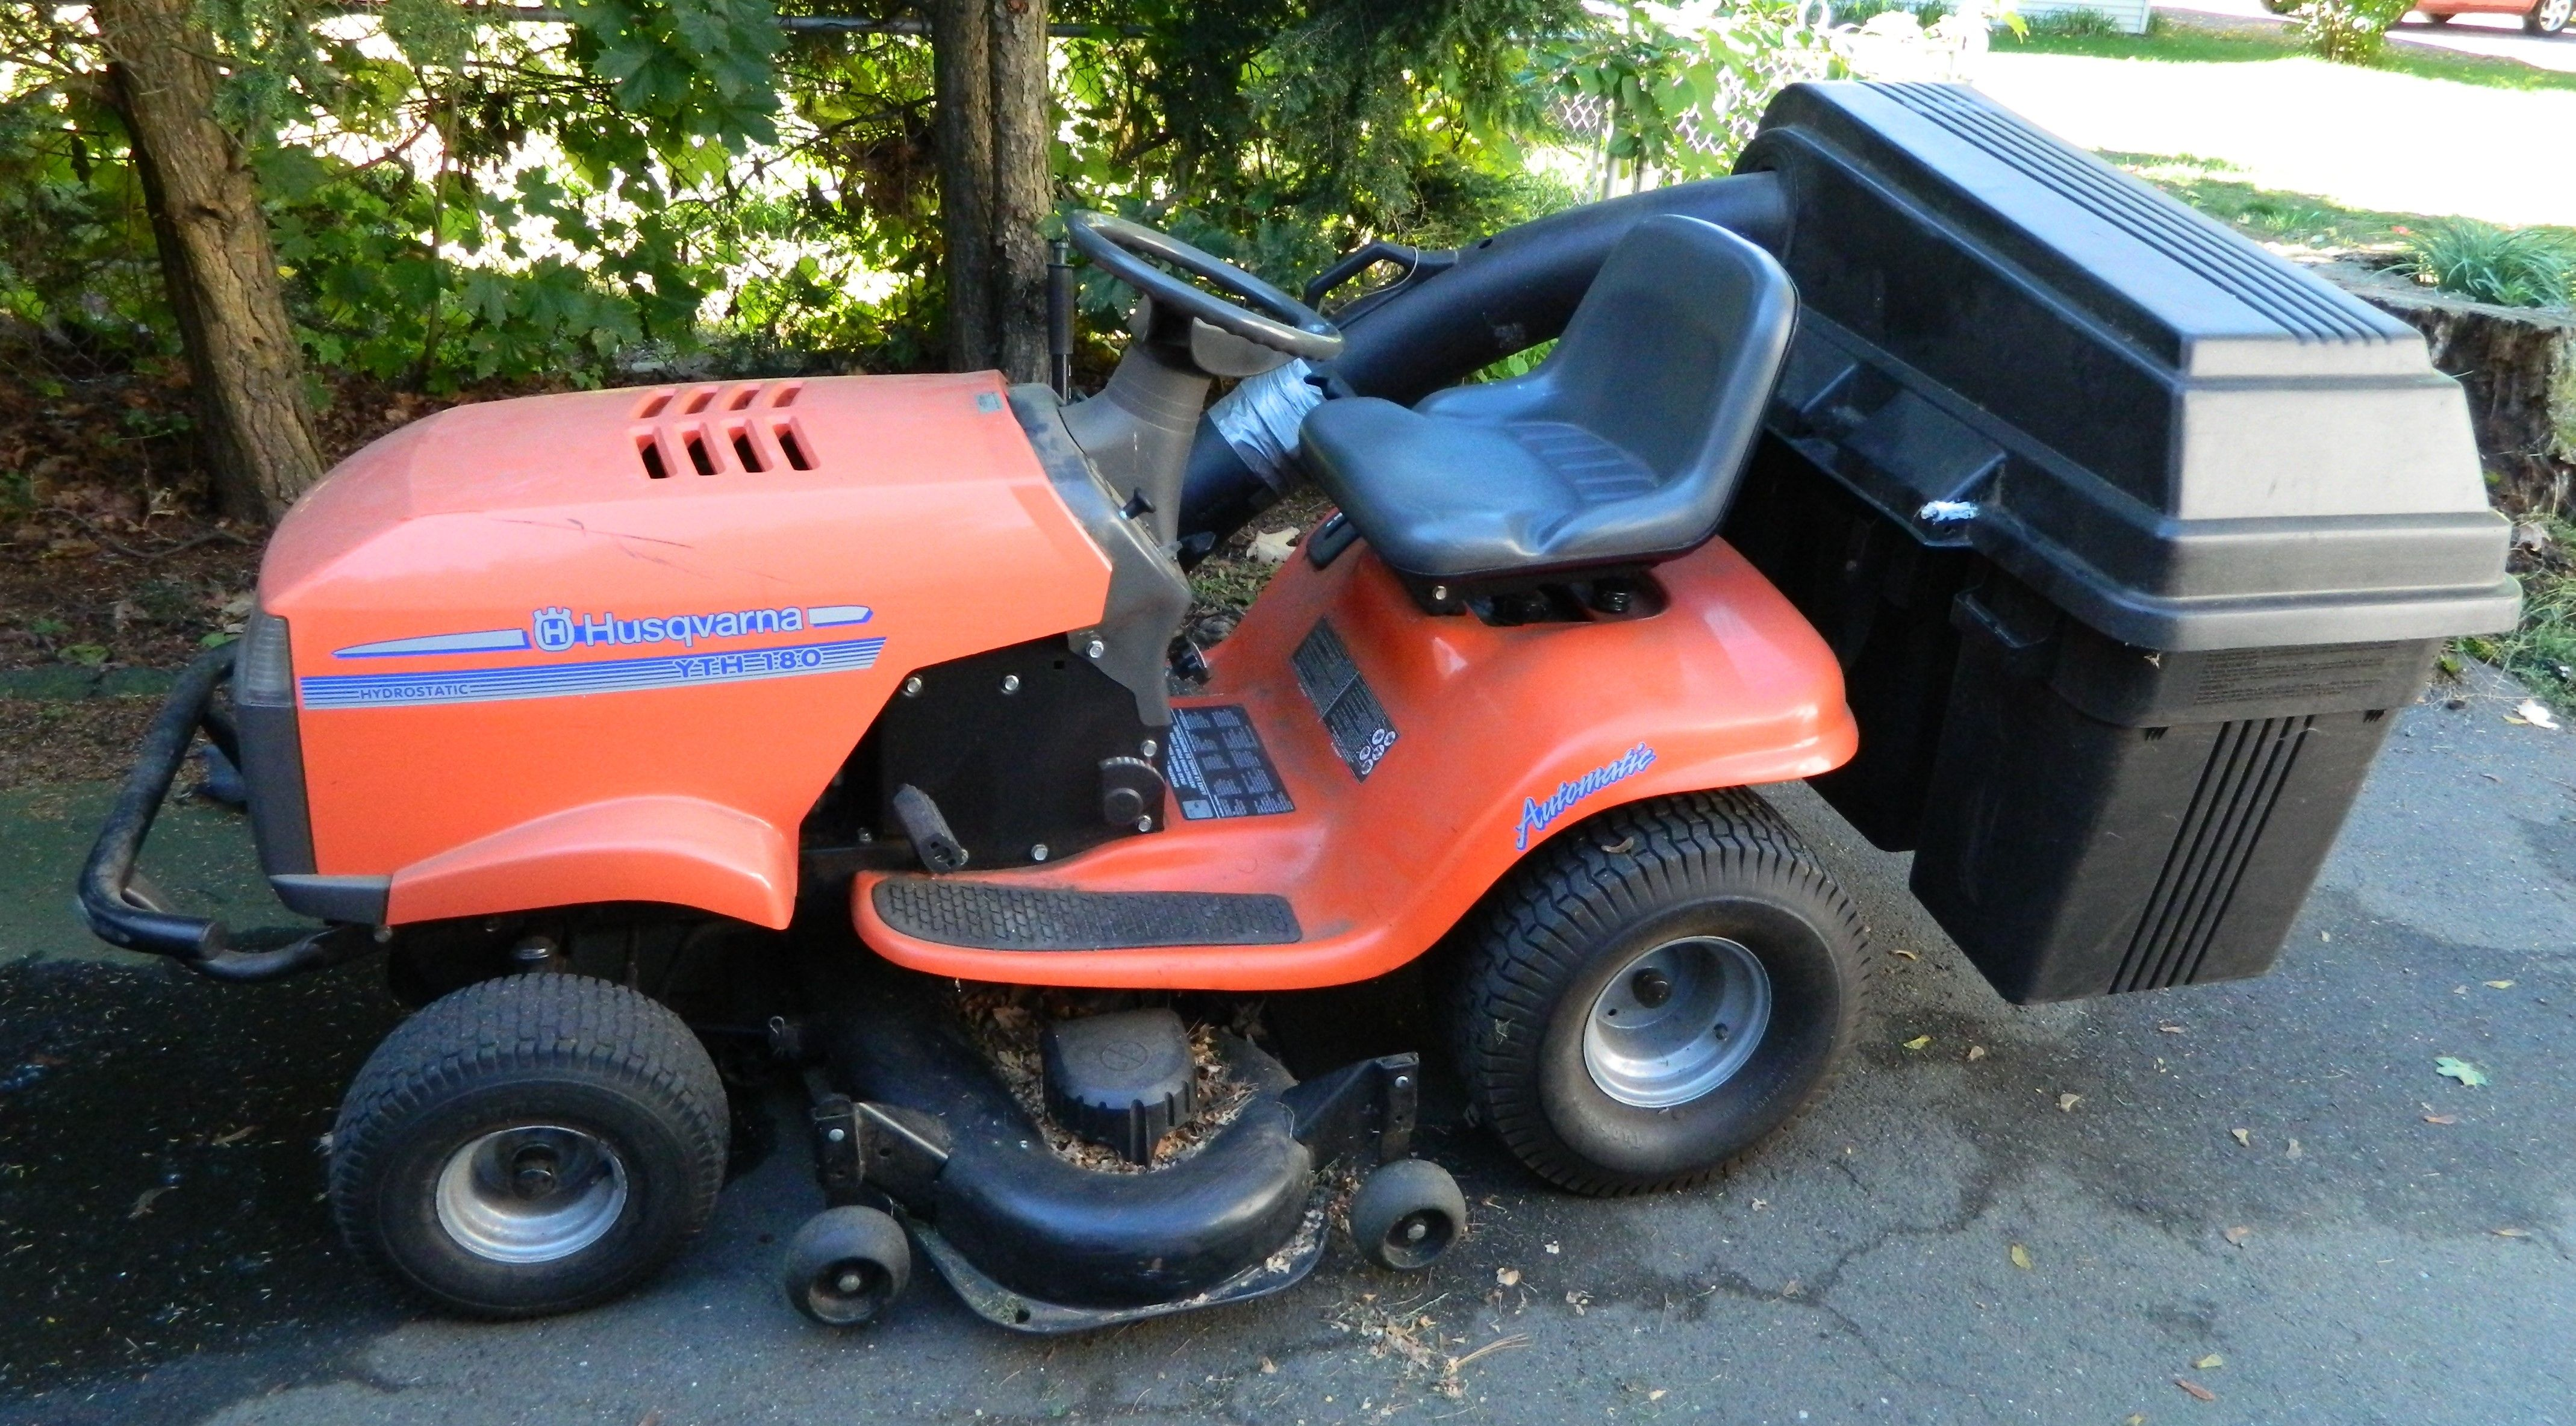 Husquvarna Lawn Tractor Model Yth 180 With Mower Deck And 3 Tup Bagger Attachment Can Be Used With Mulching Cover As Well I Lawn Tractor Mulching Tractors